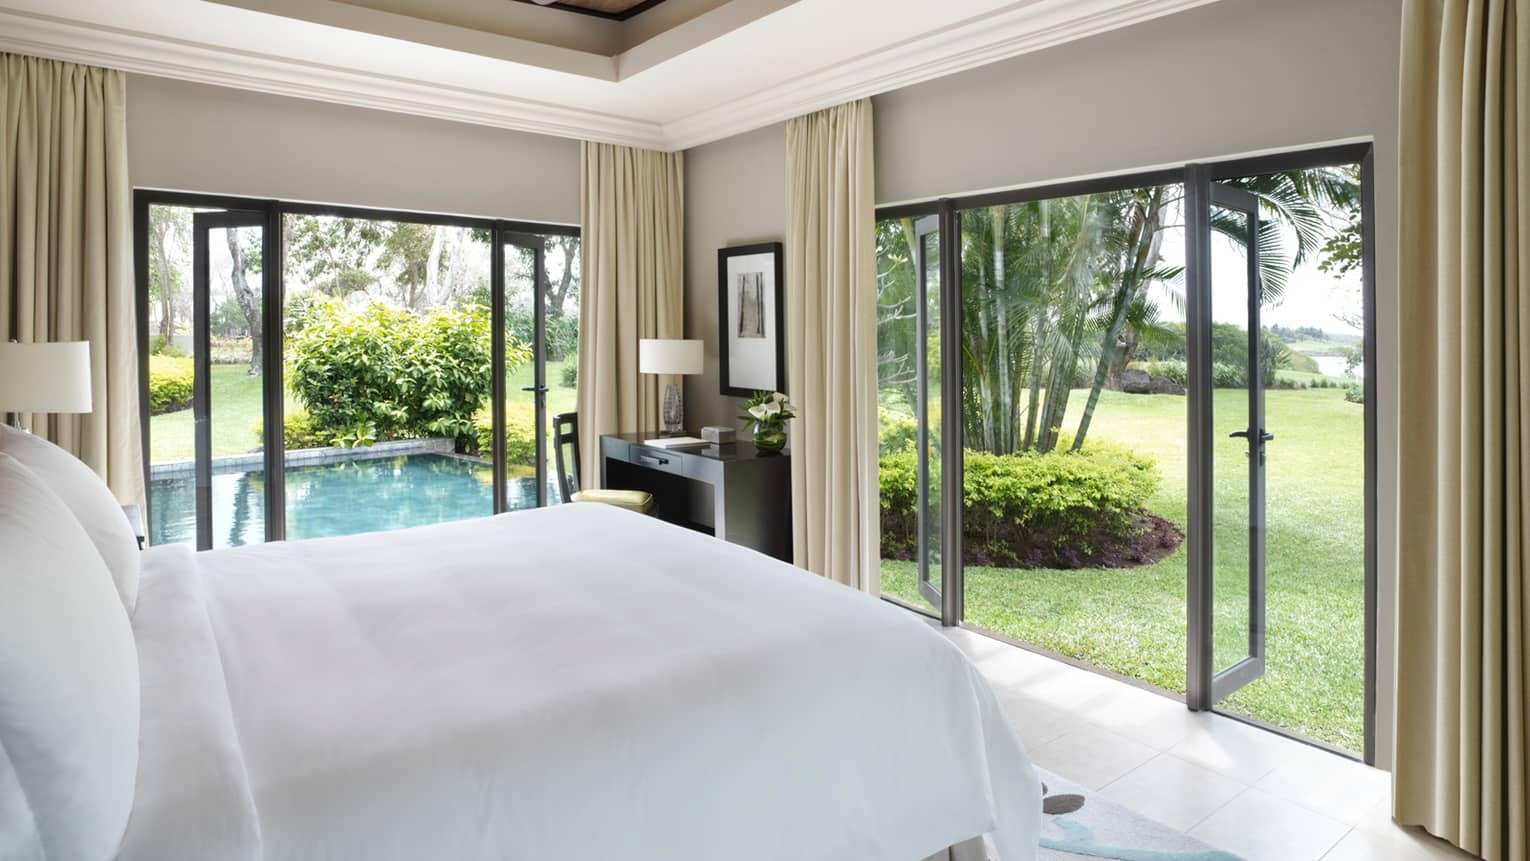 Deluxe Residence Villa side of bed with white linens, open corner patio doors, plunge pool